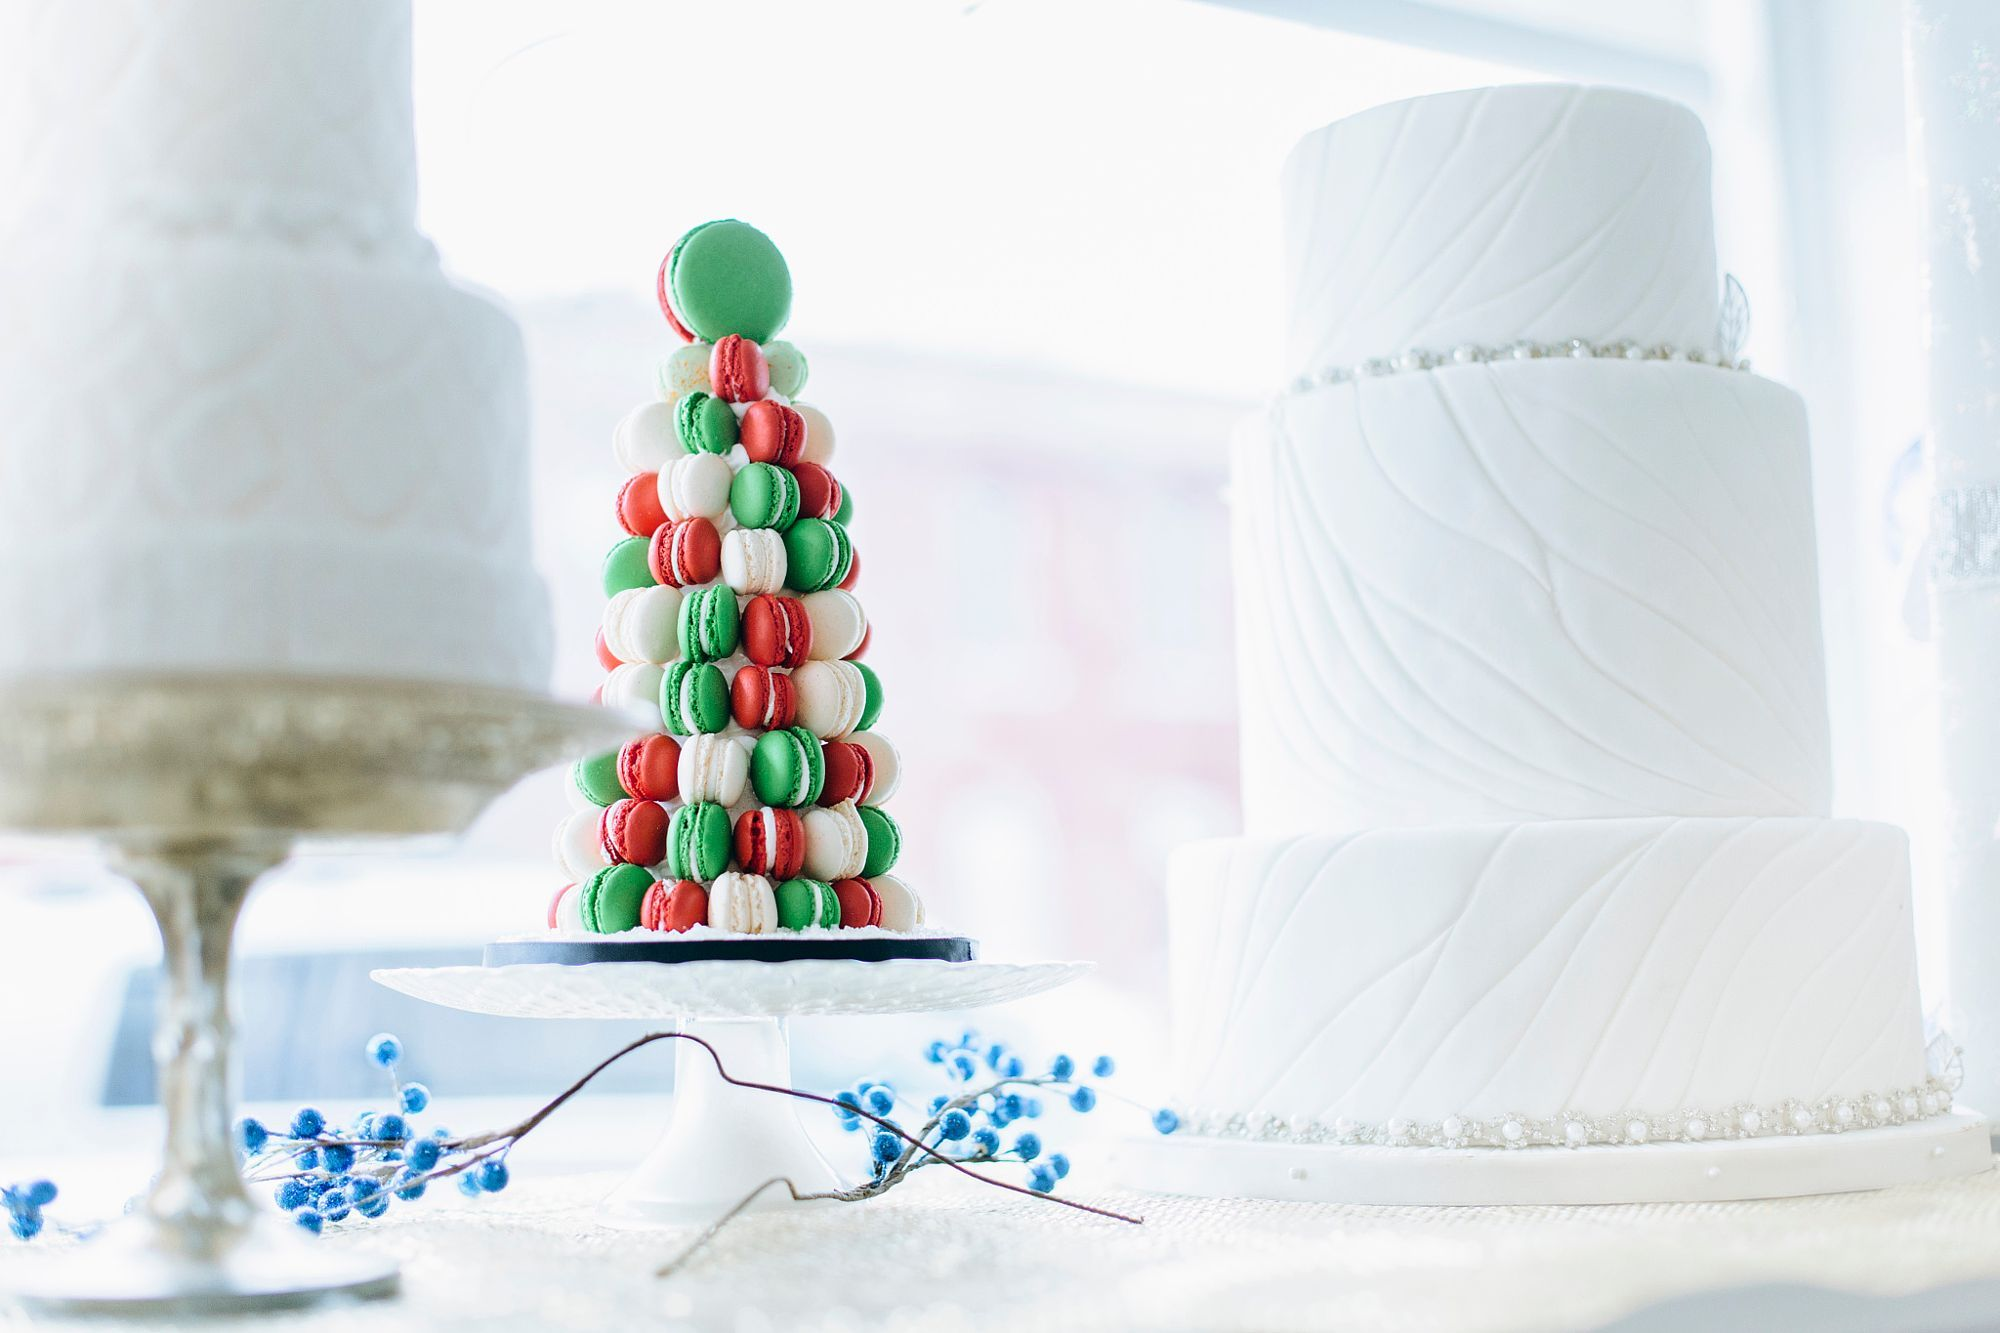 Macaroon and wedding cakes in bakery window by Gable Denims on 500px